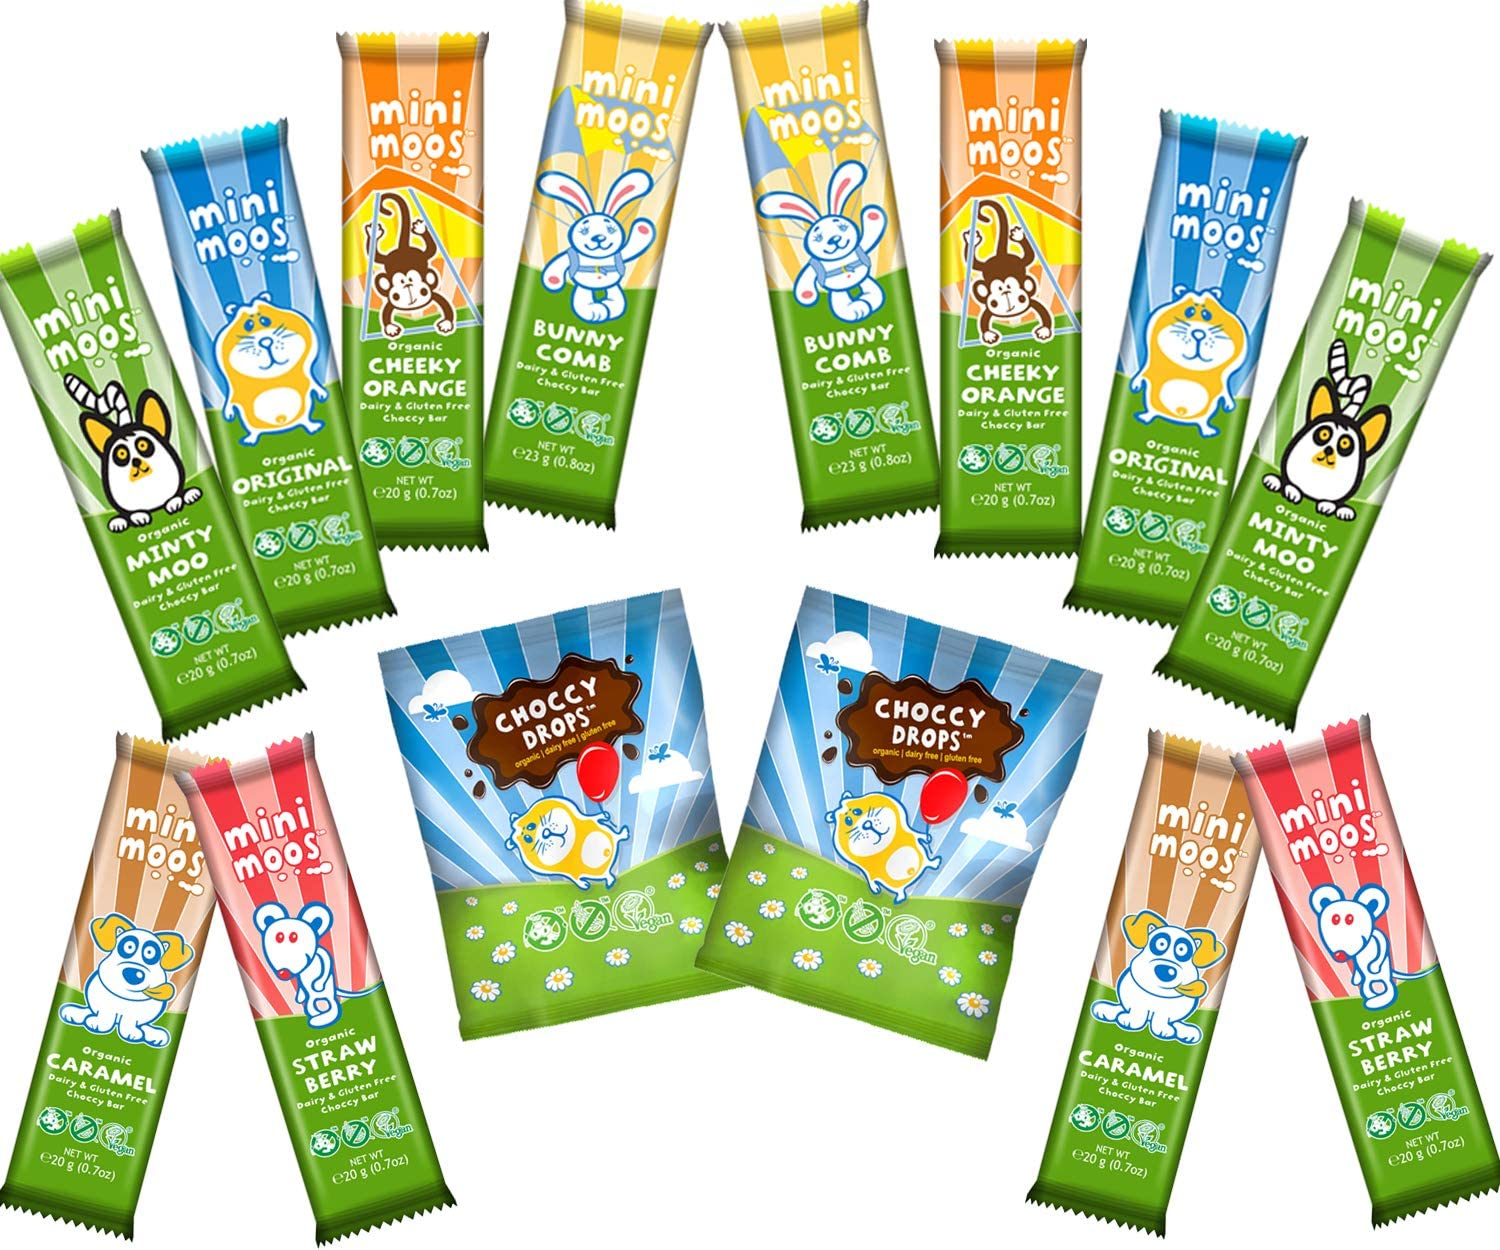 Moo Free Dairy Free Chocolate 14 x Items Mixed Case-Mini Moo Choco Drops